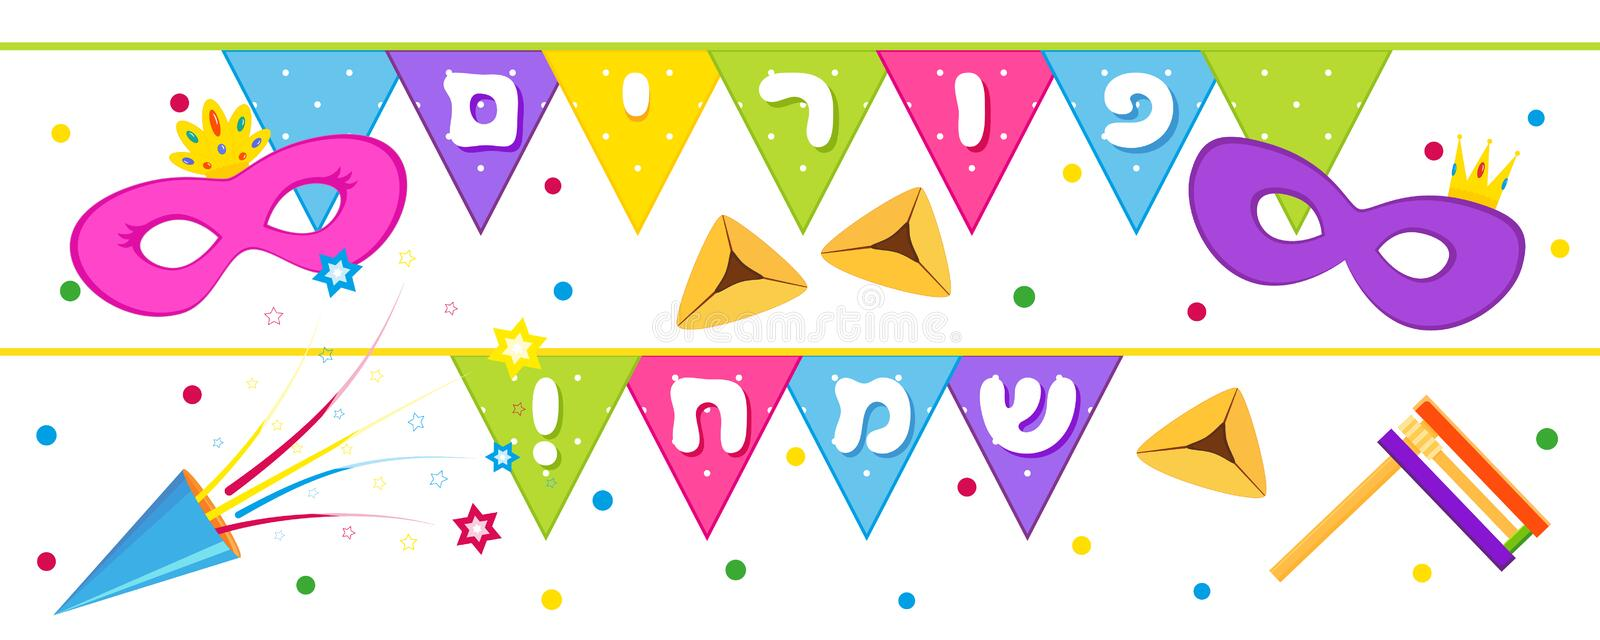 Jewish holiday of Purim, banner with holiday flags. Jewish holiday of Purim, banner with masks, traditional hamantaschen cookies, gragger noise maker, party stock illustration